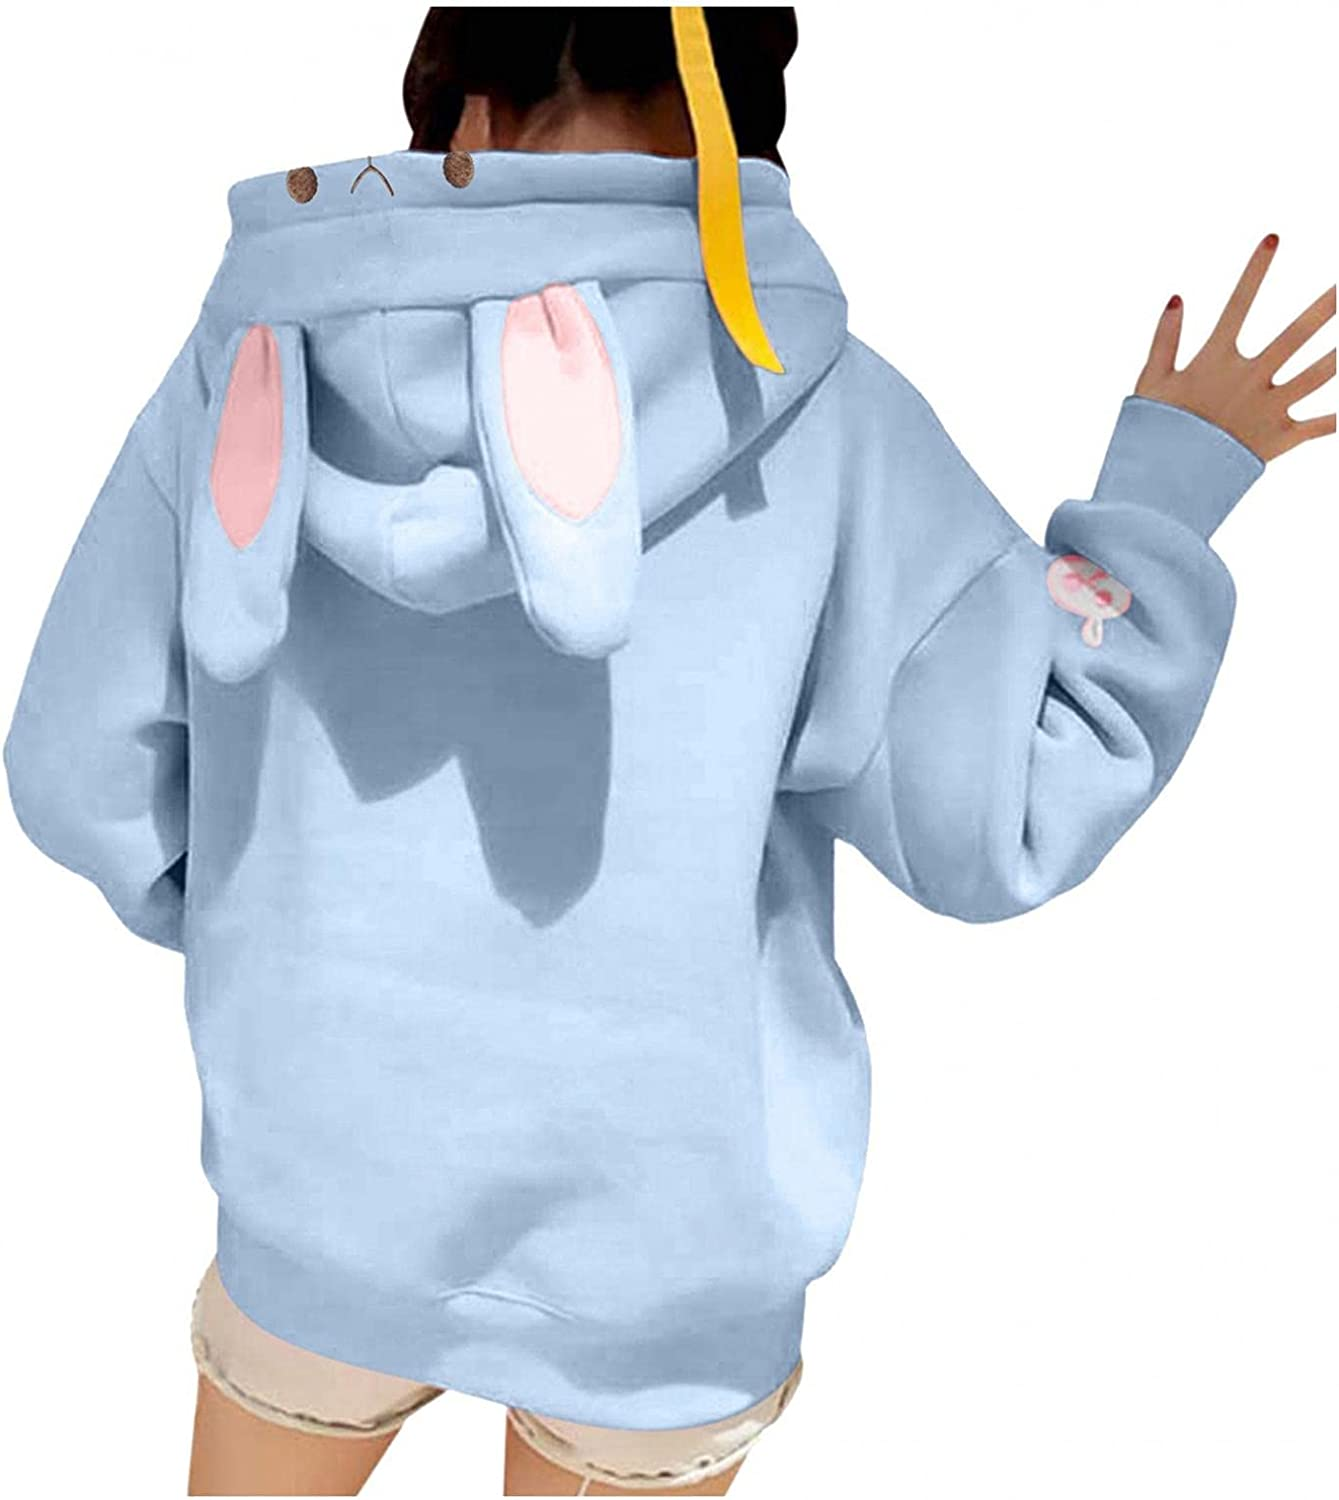 Frog Hoodies for Teen Girls Pullover Cute Long Sleeve Sweatshirts Tops Casual Design Drawstring Blouses with Pockets